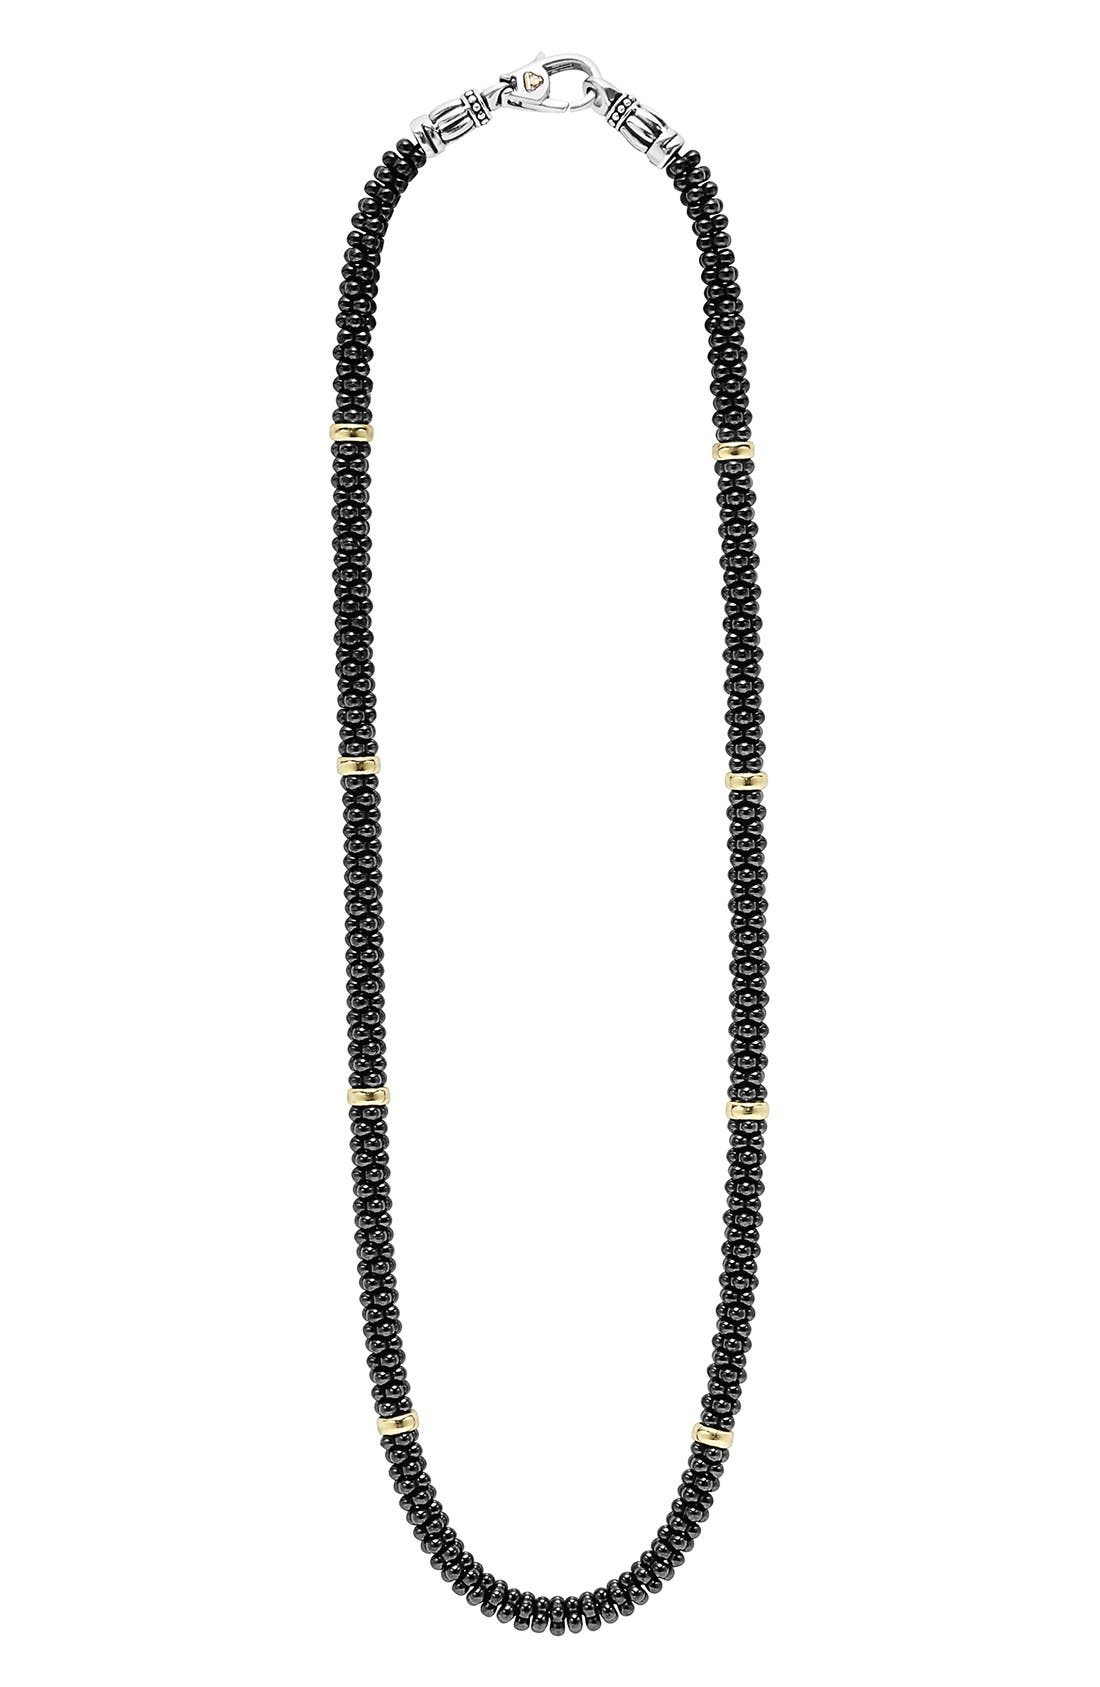 LAGOS 'Black Caviar' Station Rope Necklace